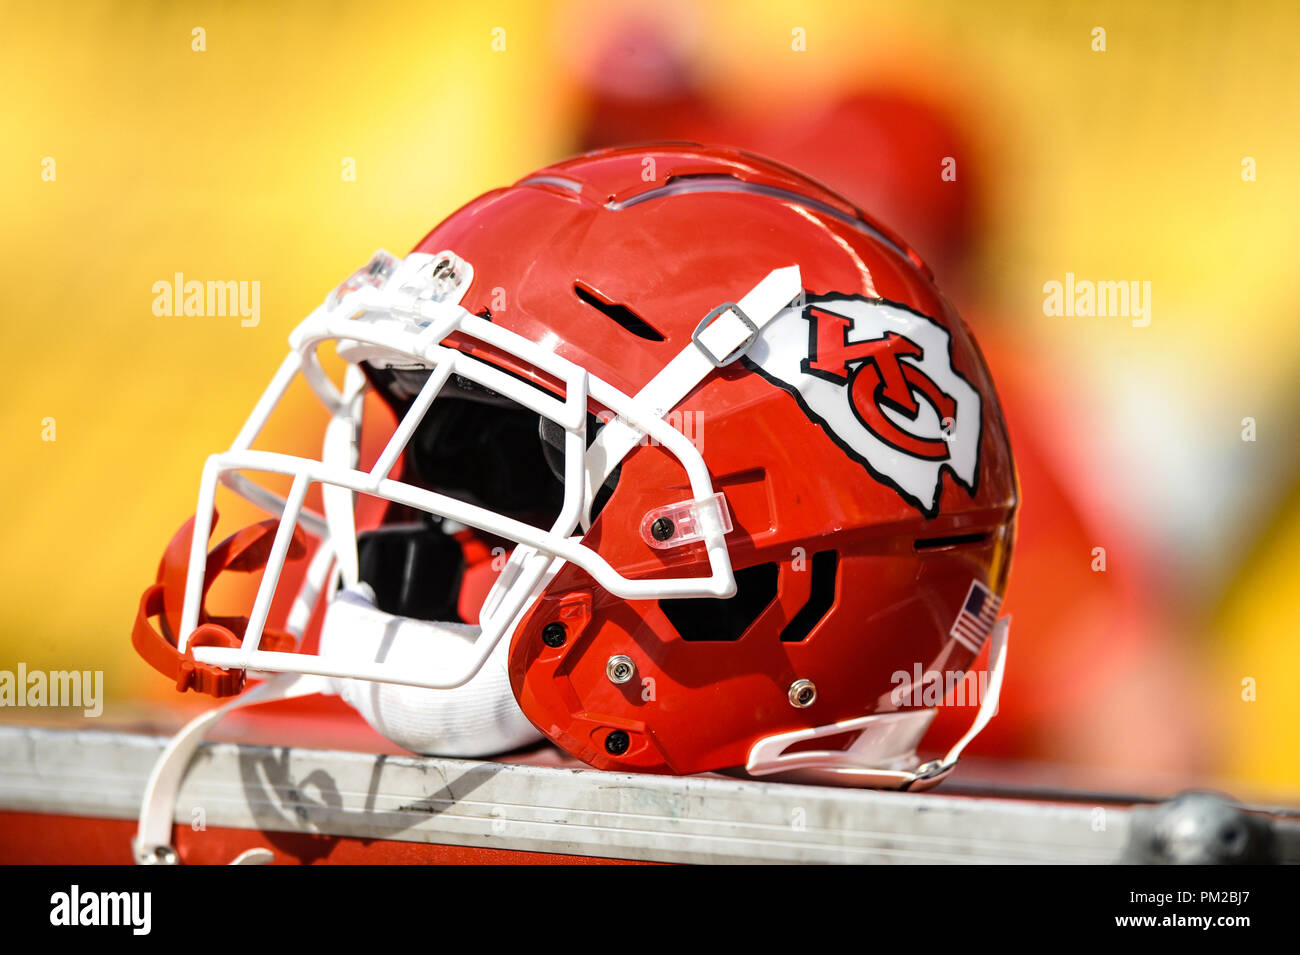 Kansas City Chiefs Helmet High Resolution Stock Photography And Images Alamy